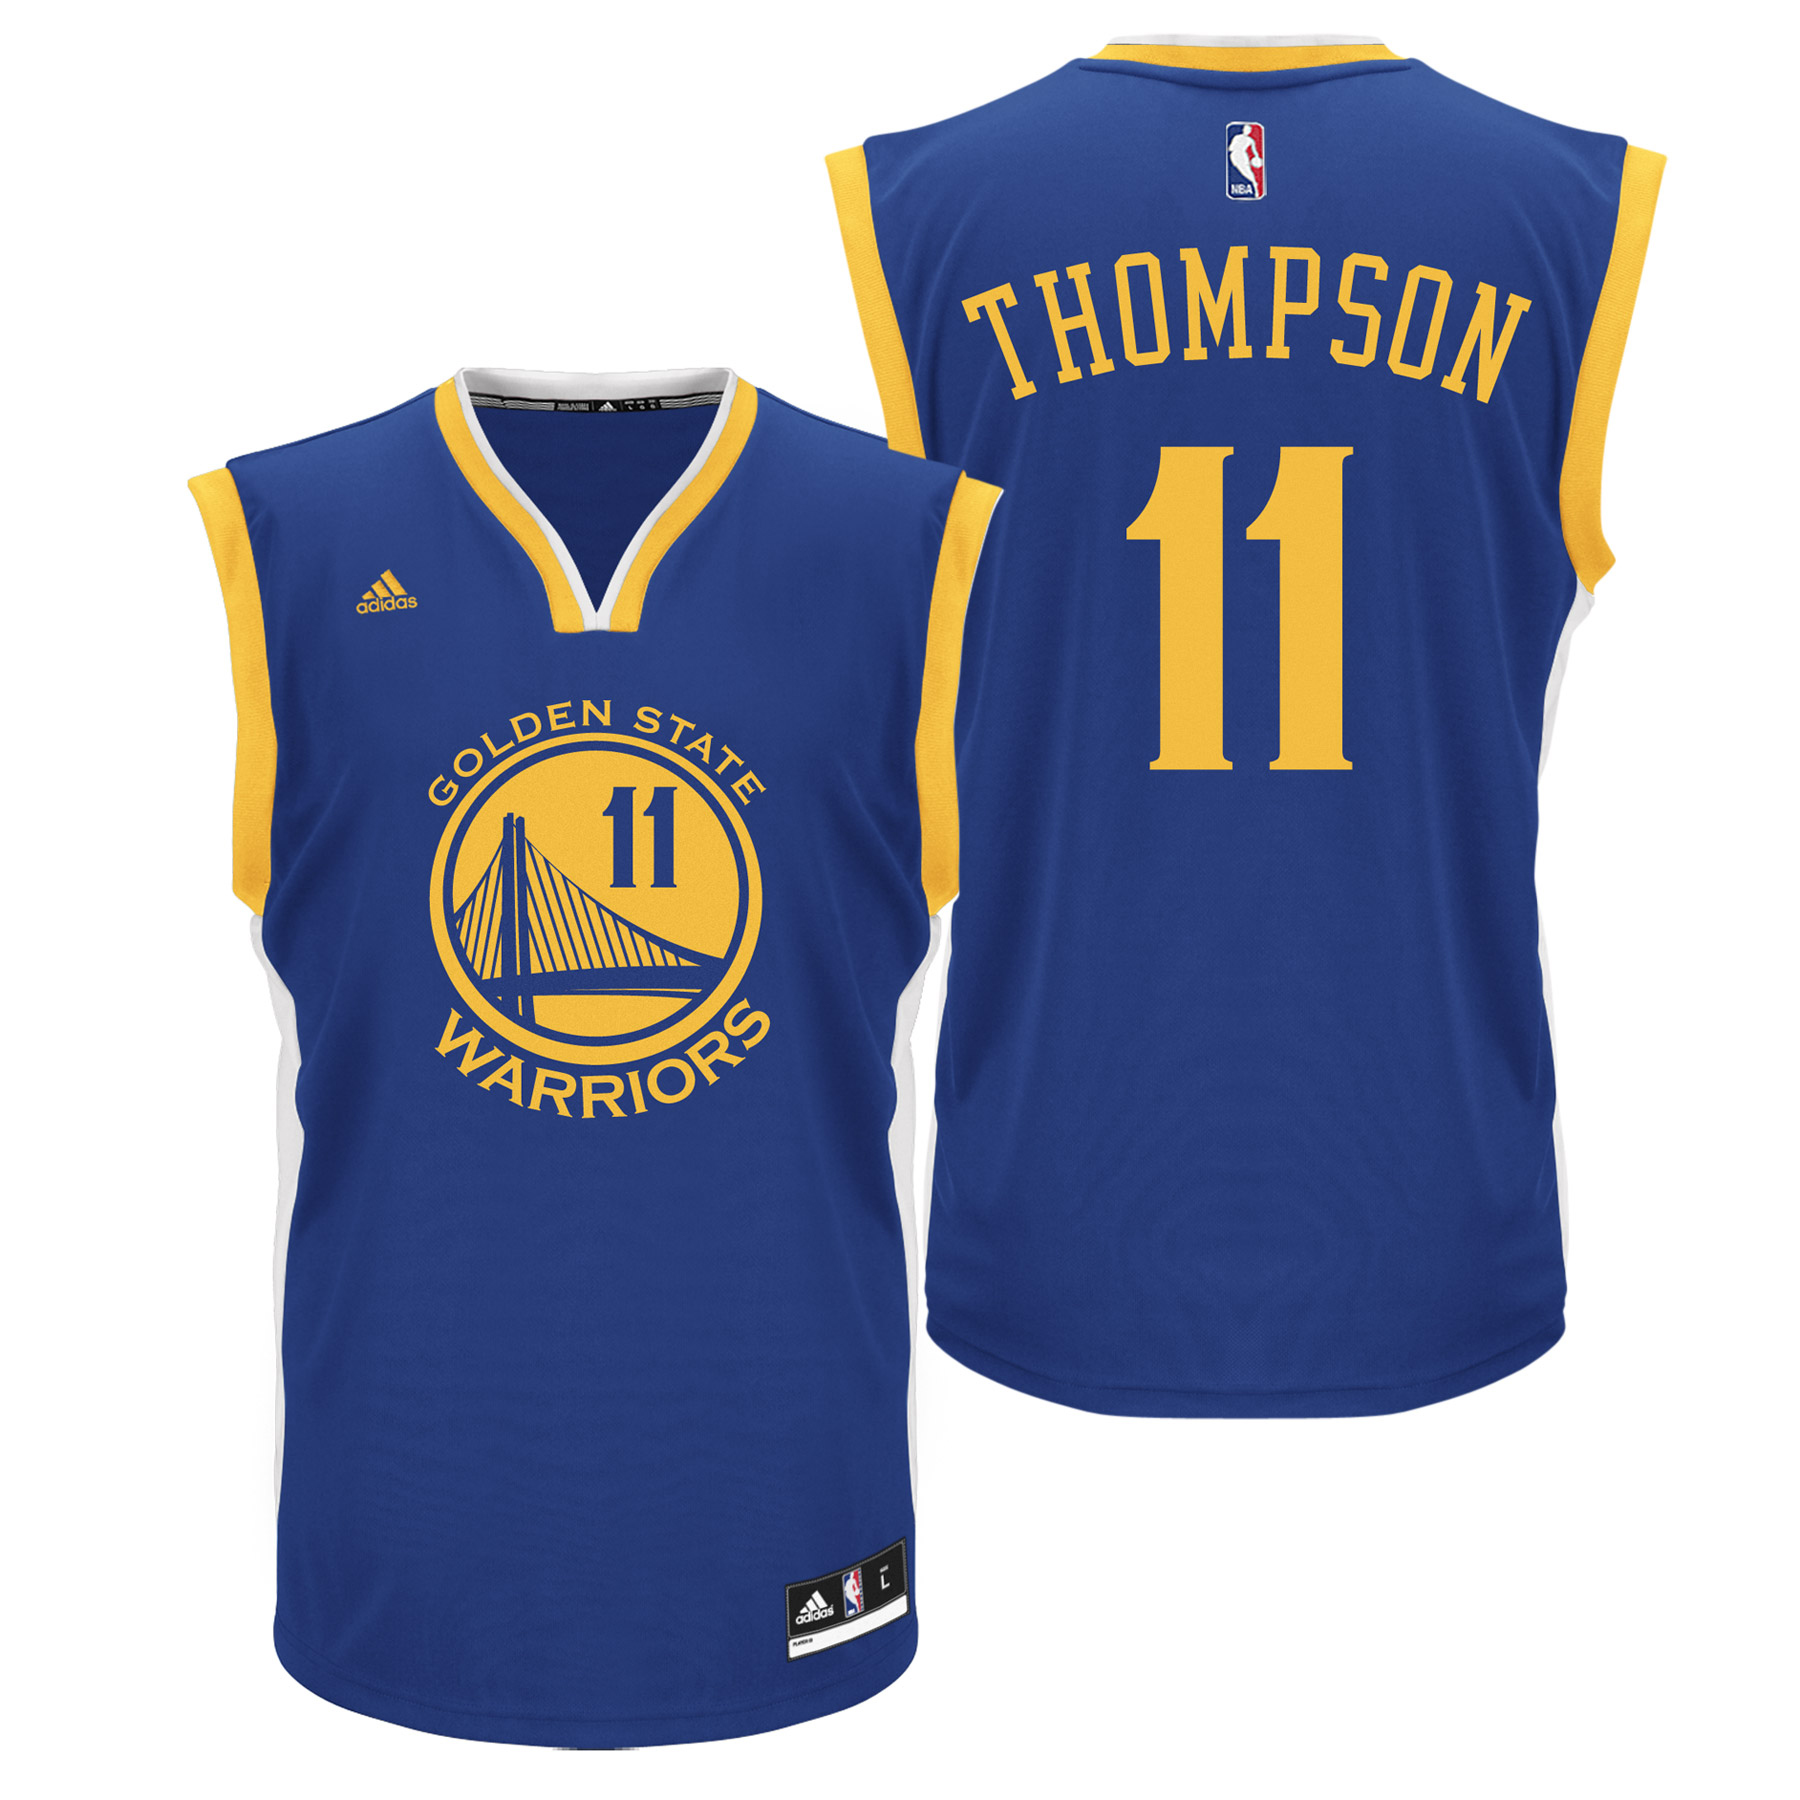 Golden State Warriors Road Replica Jersey - Klay Thompson - Youth